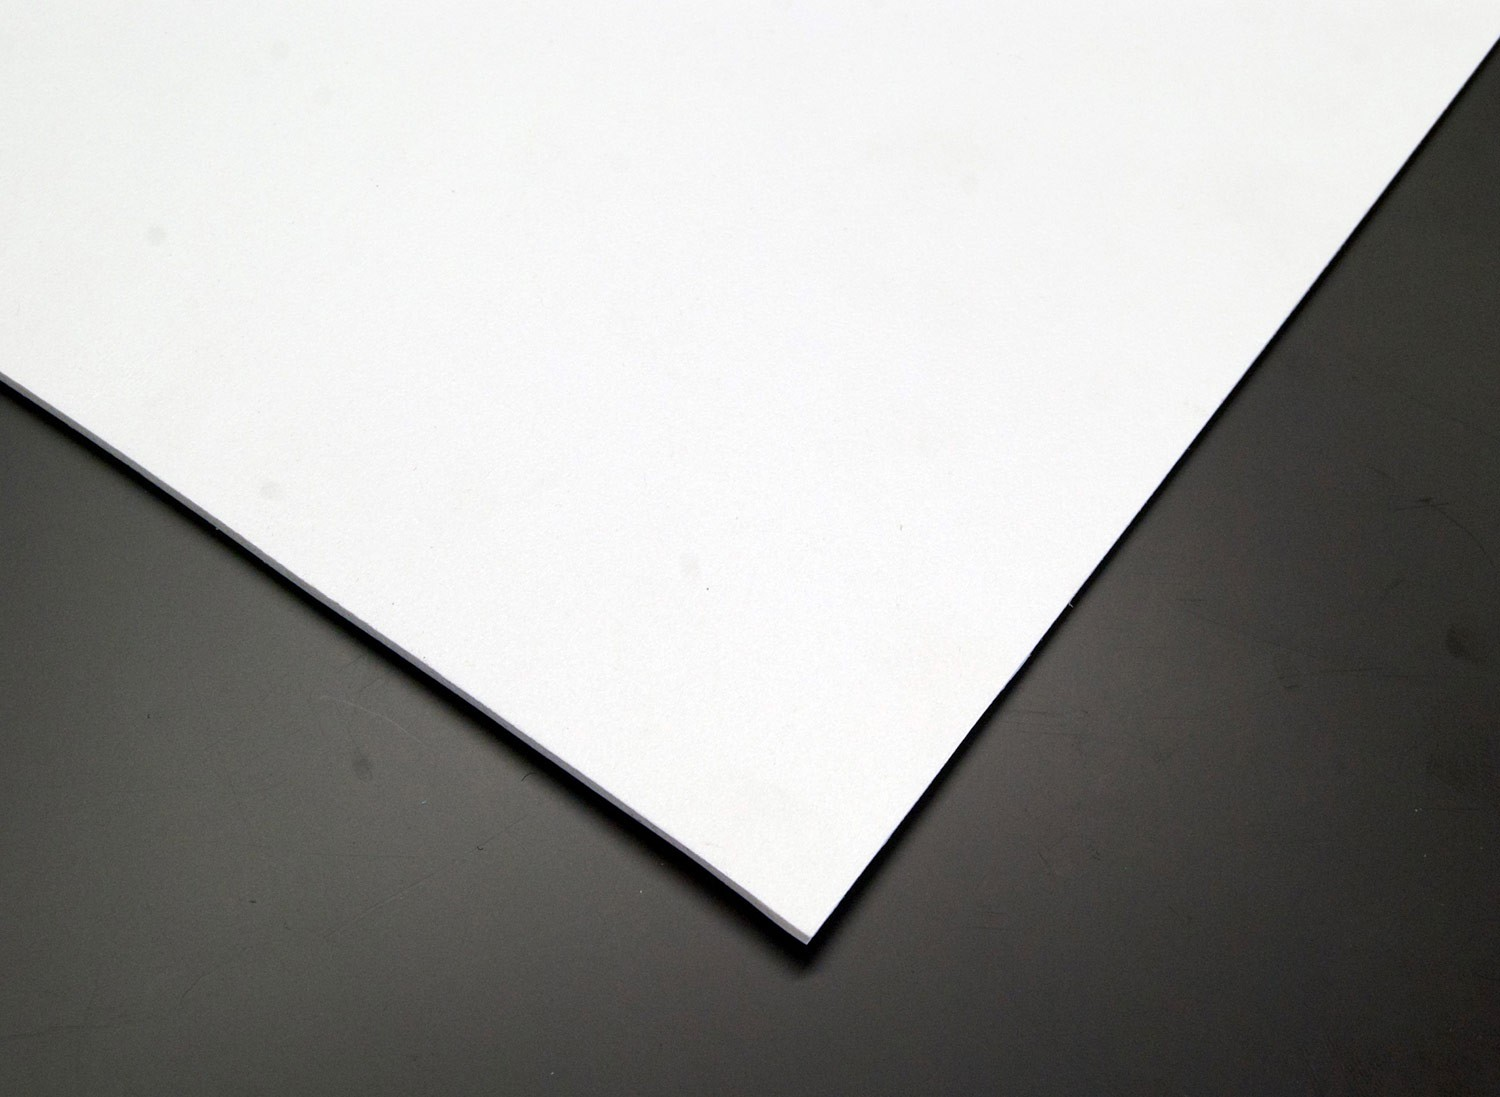 5mm Foamex PVC 2440 x 1220mm (White)